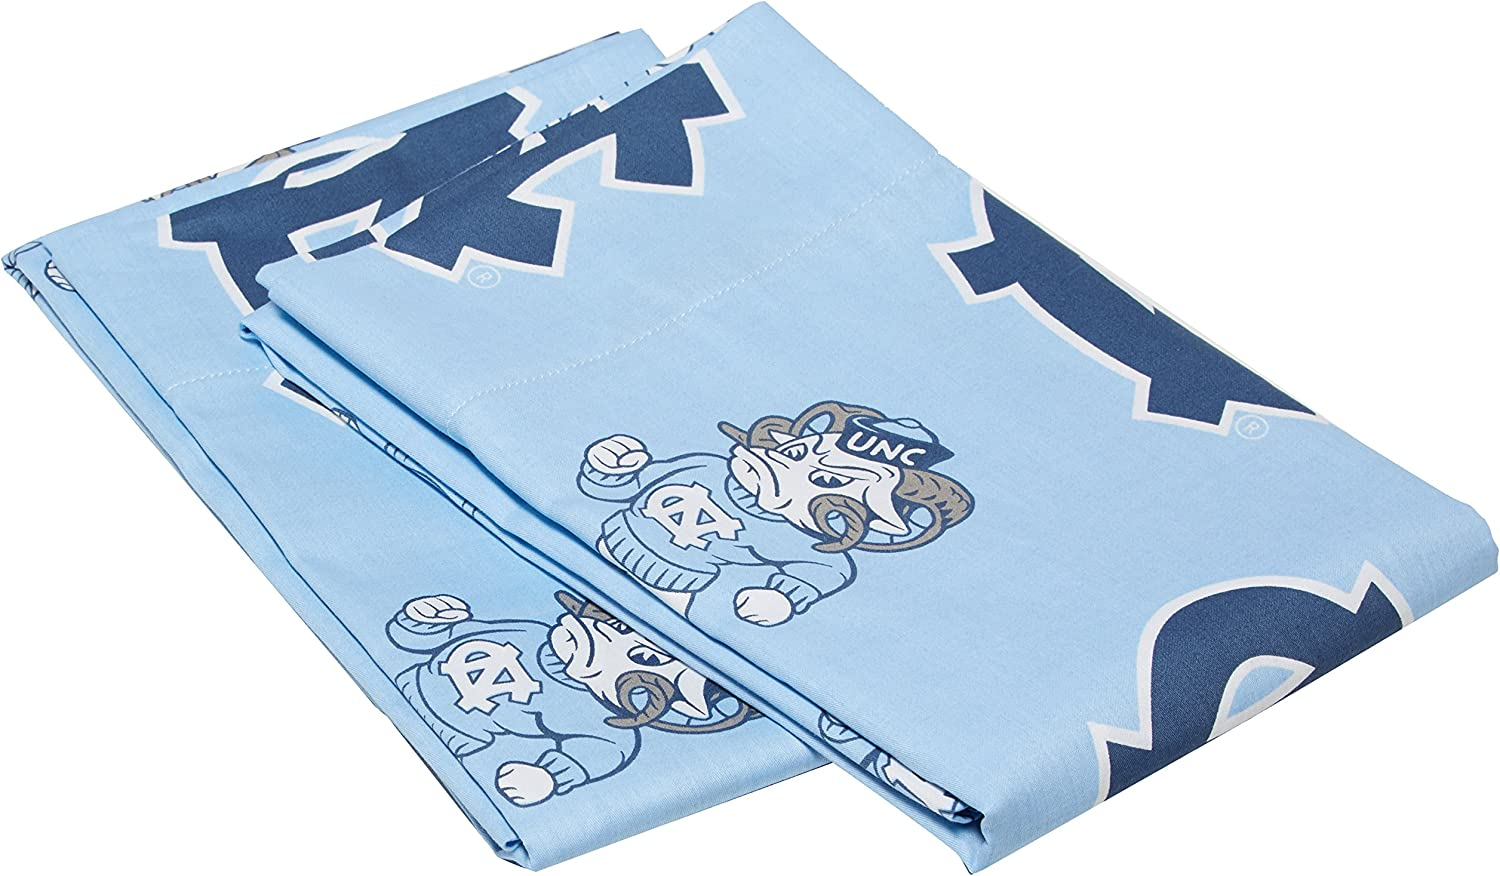 College Covers North Carolina Tar Heels Pillowcase Pair - Solid (Includes 2 Standard Pillowcases)